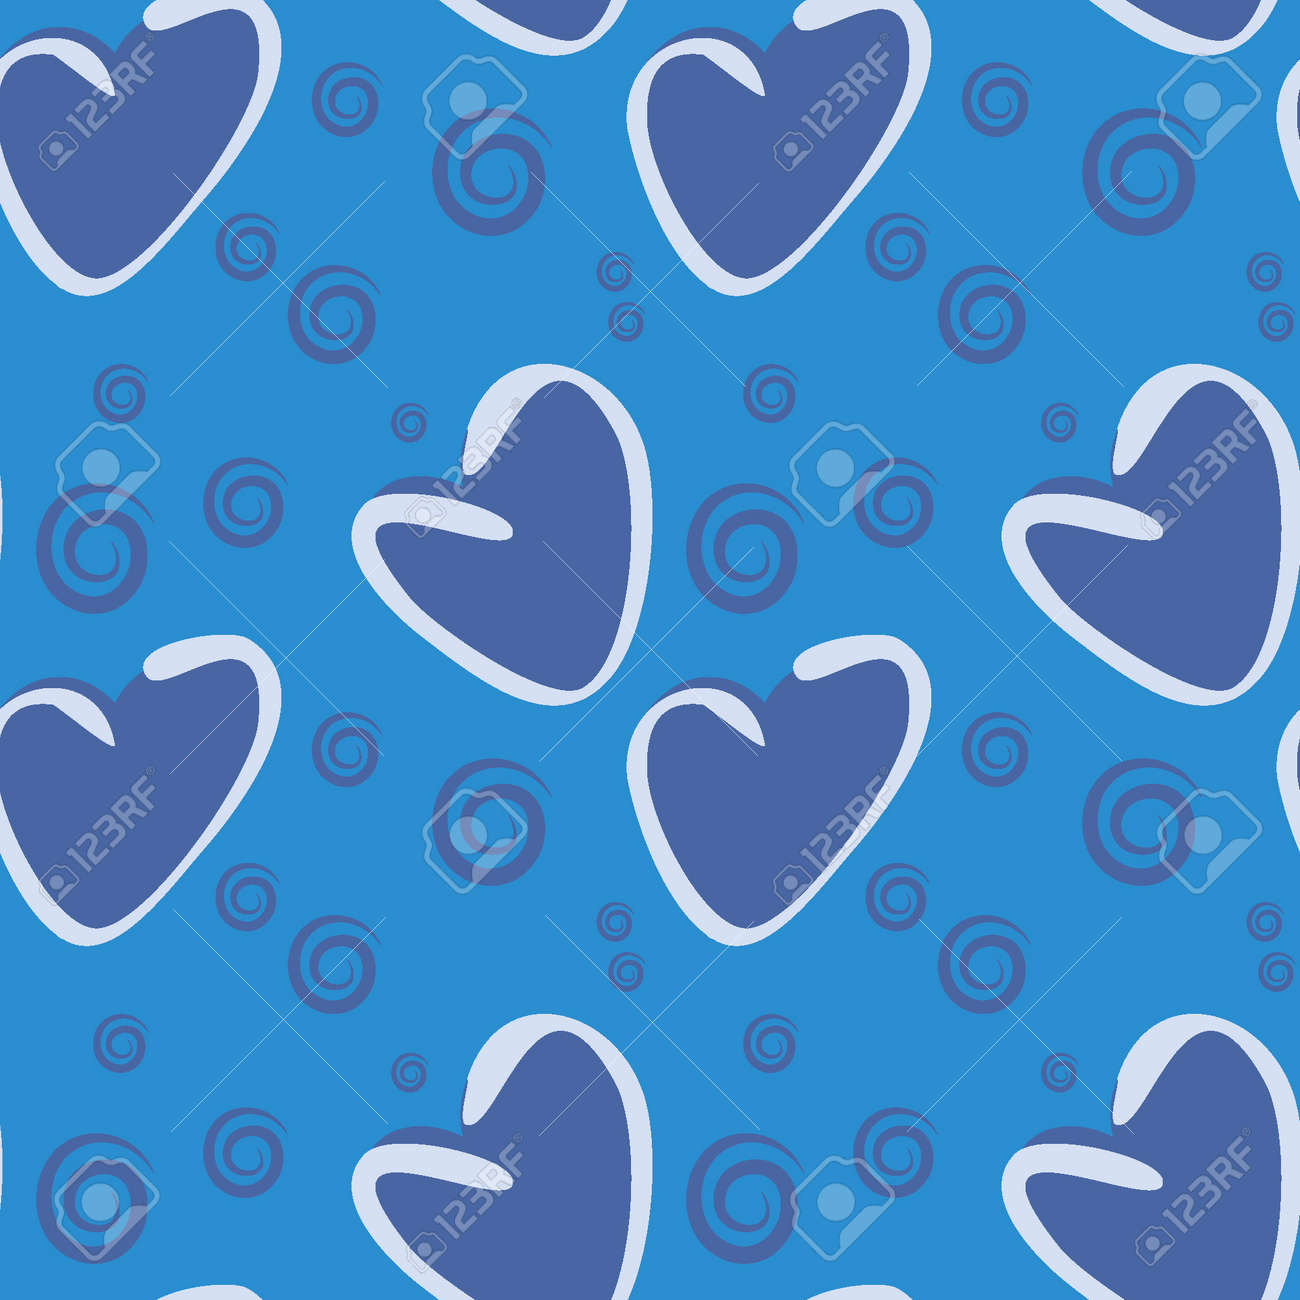 Seamless pattern, endless texture on a square background - stylized hearts - color graphics. A fabulous world of love. Surreal. Design elements. Background for website, blog, wallpaper, textiles, packaging. - 170357199